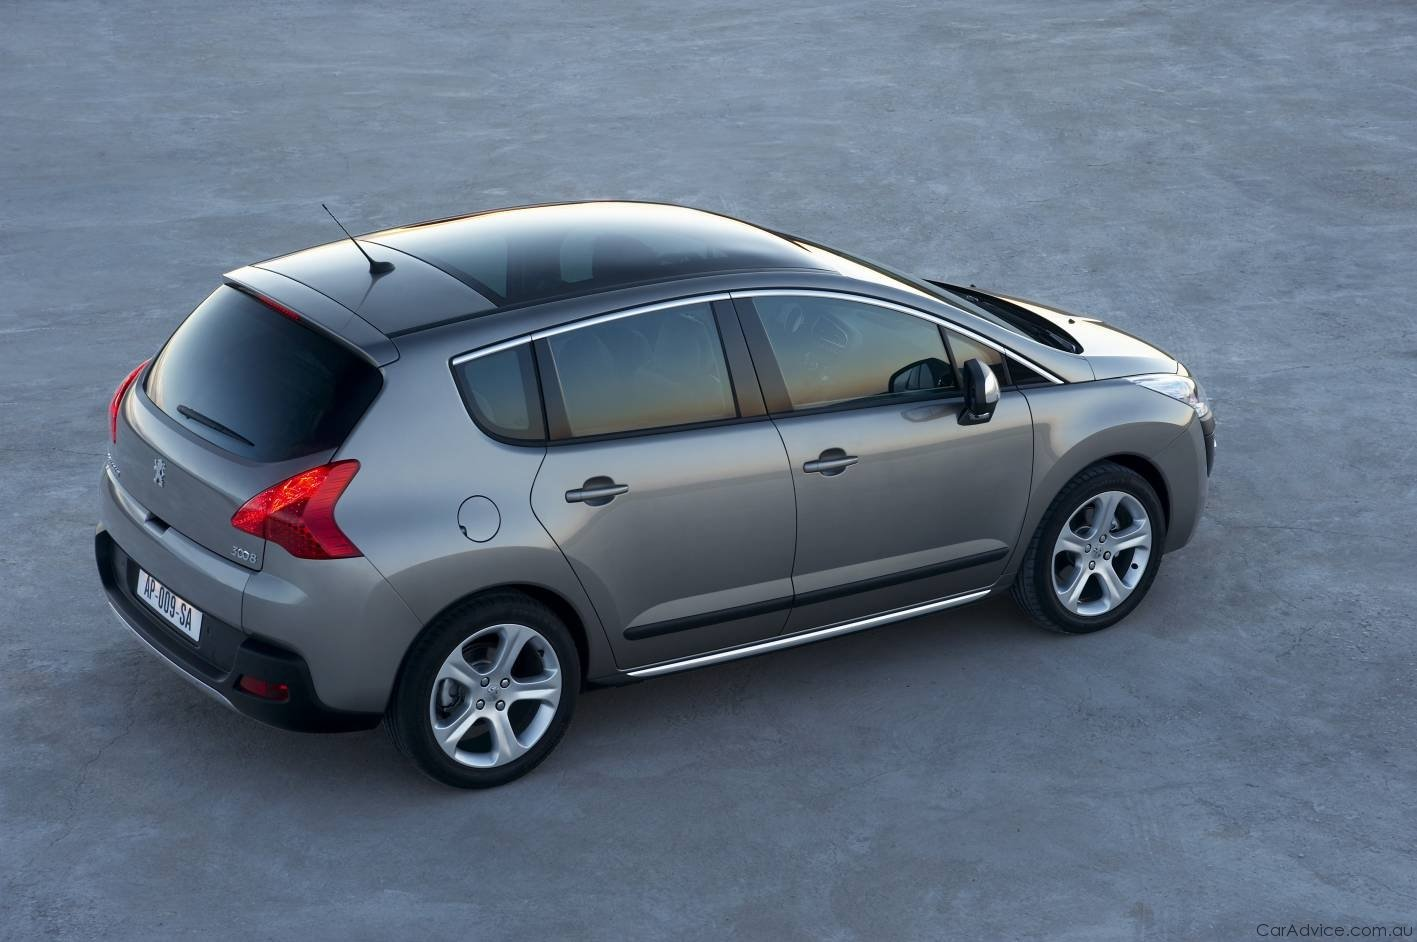 peugeot 3008 compact suv launching in may photos caradvice. Black Bedroom Furniture Sets. Home Design Ideas